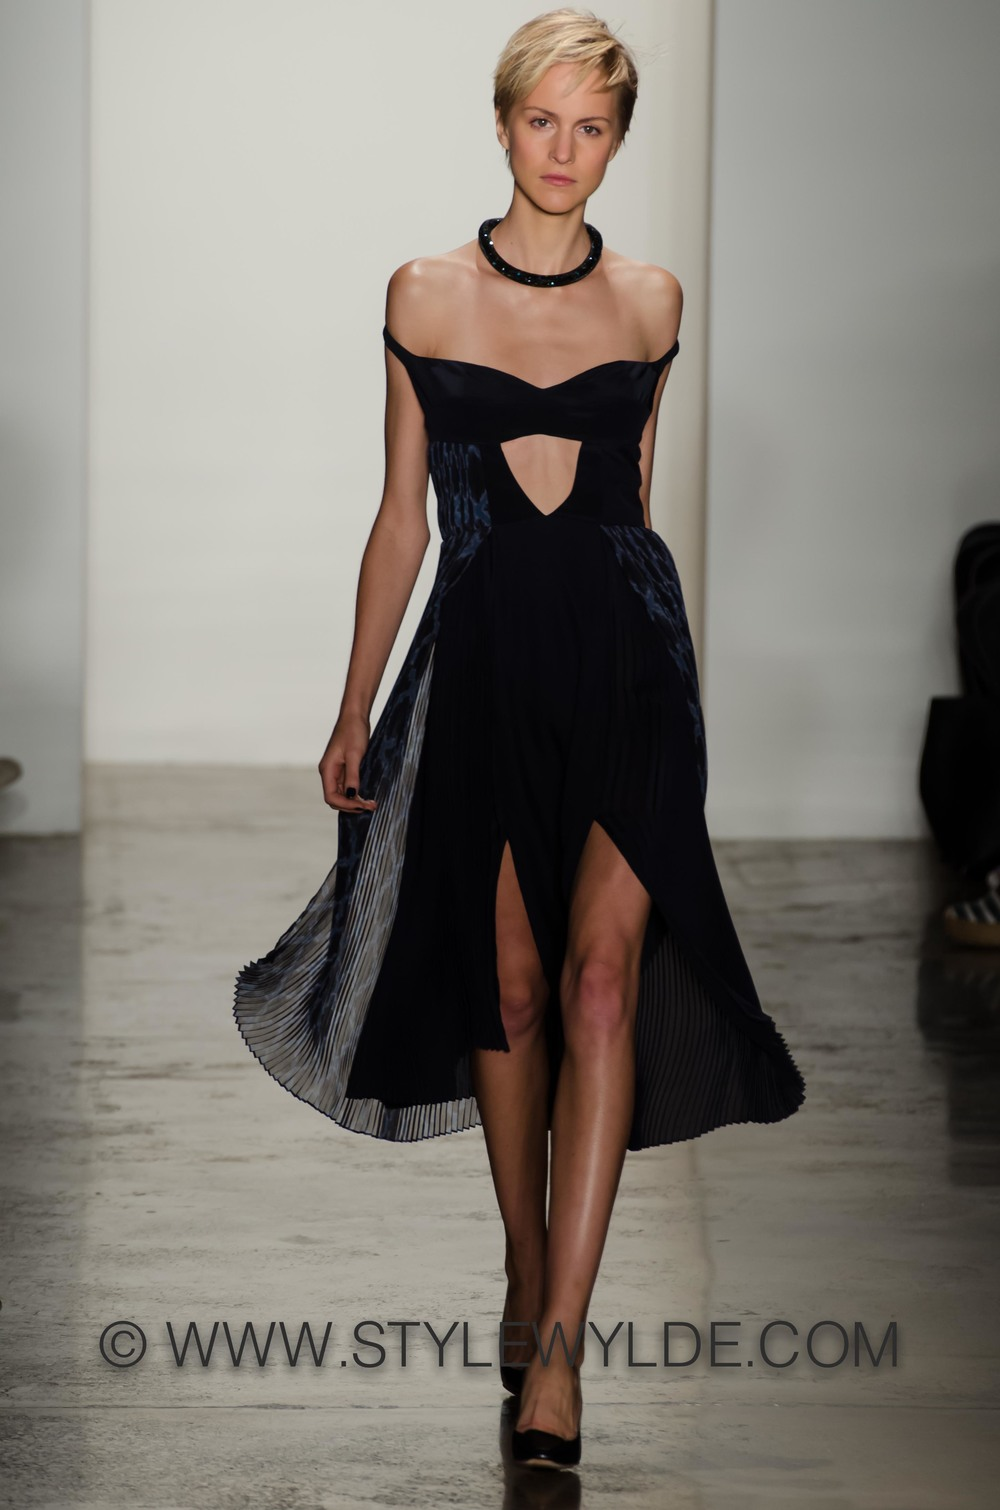 stylewylde_timo_weiland_gallery_ss2014-35.jpg